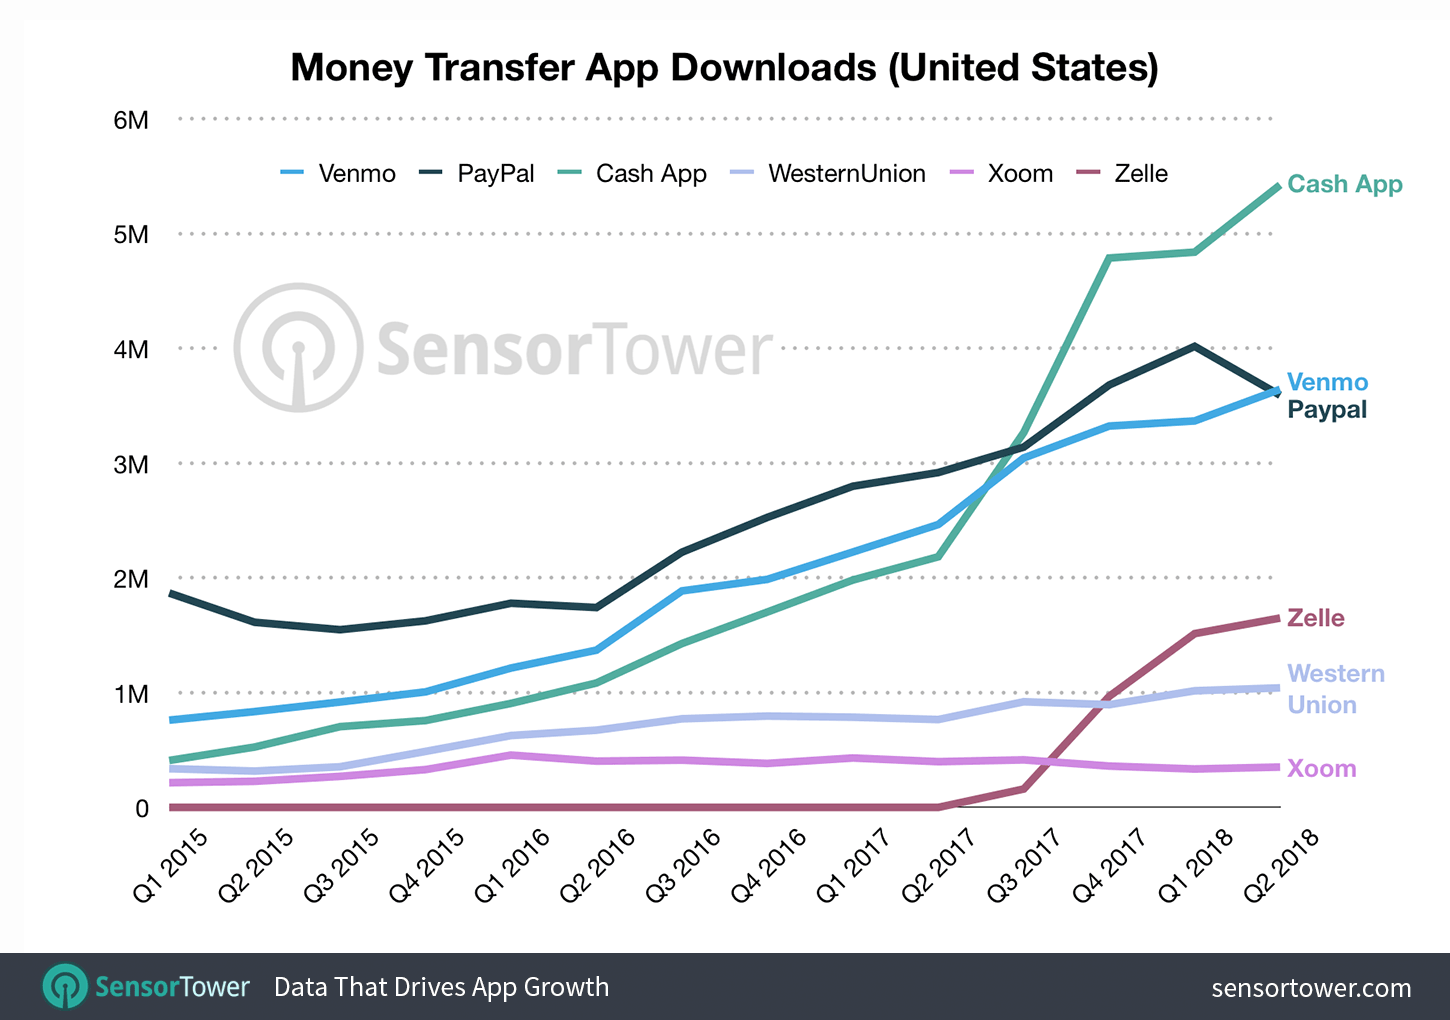 Money Transfer Apps Now Account for Nearly 30% of Finance